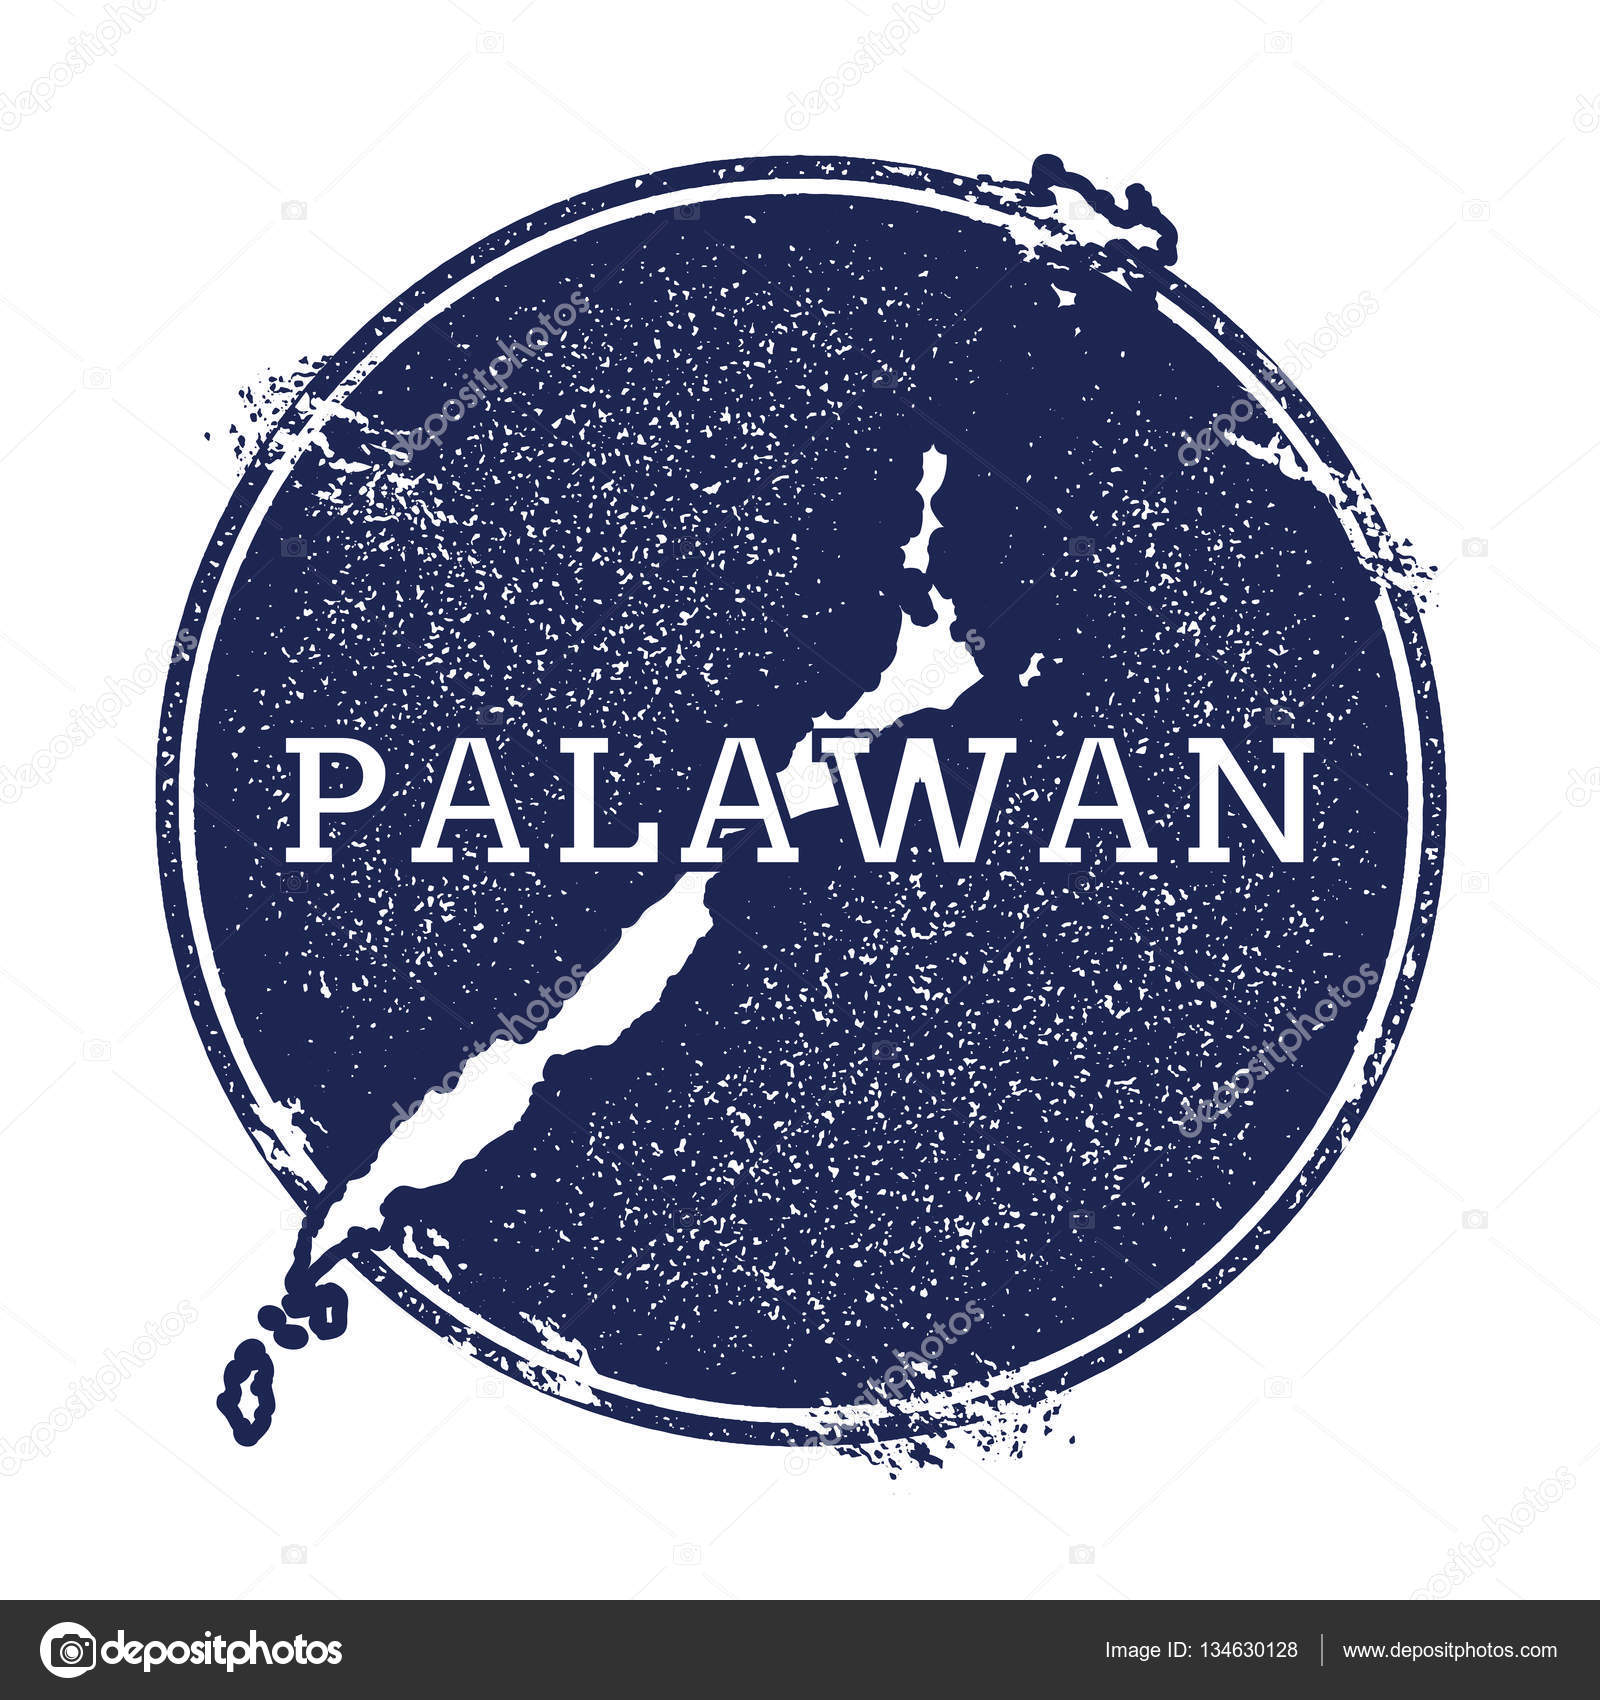 Palawan vector map Grunge rubber stamp with the name and map